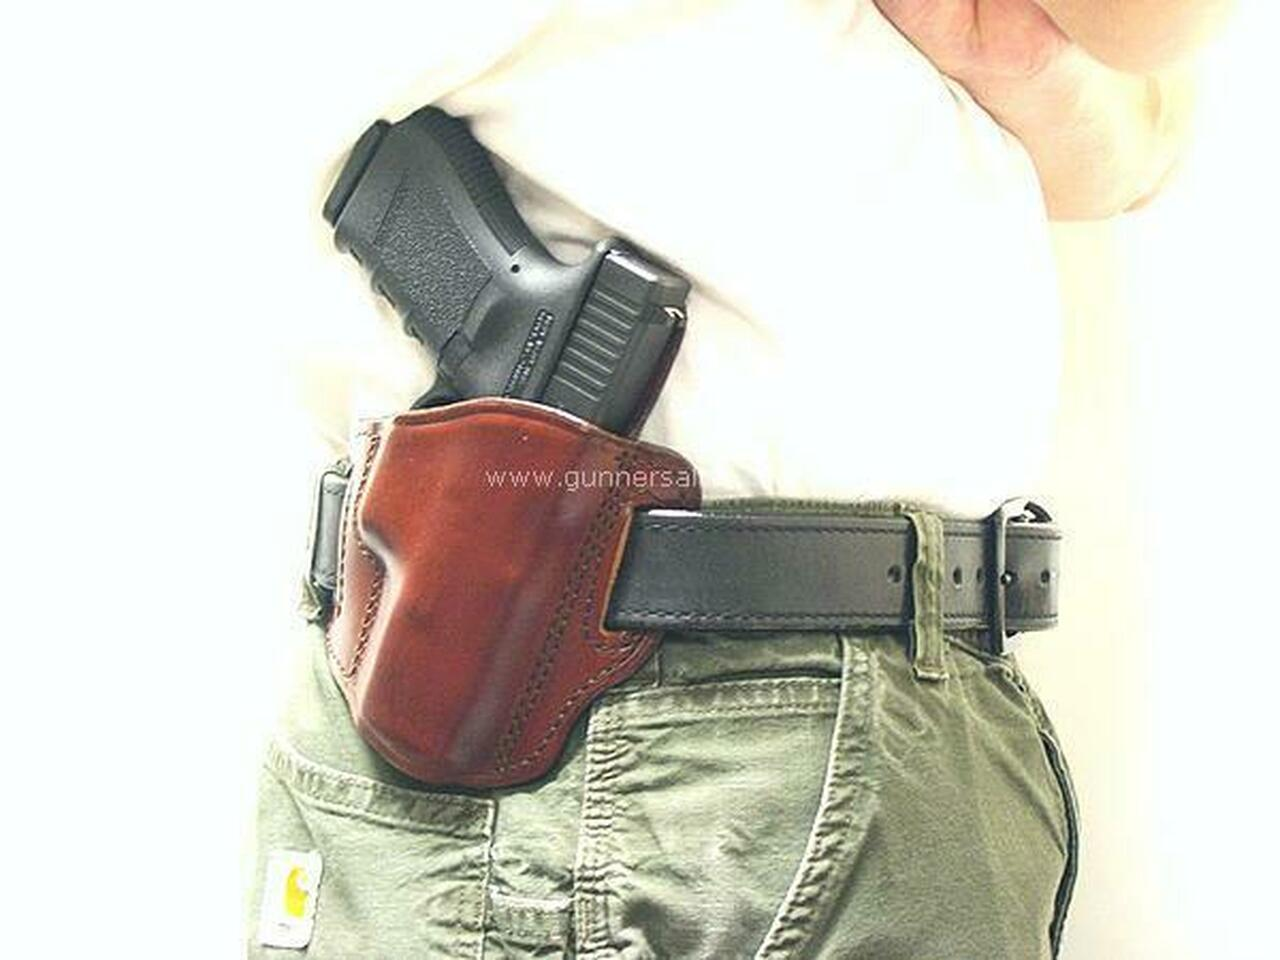 RH Model - Shown on the Belt with a Glock 19 for Demonstration Purposes - Right Hand